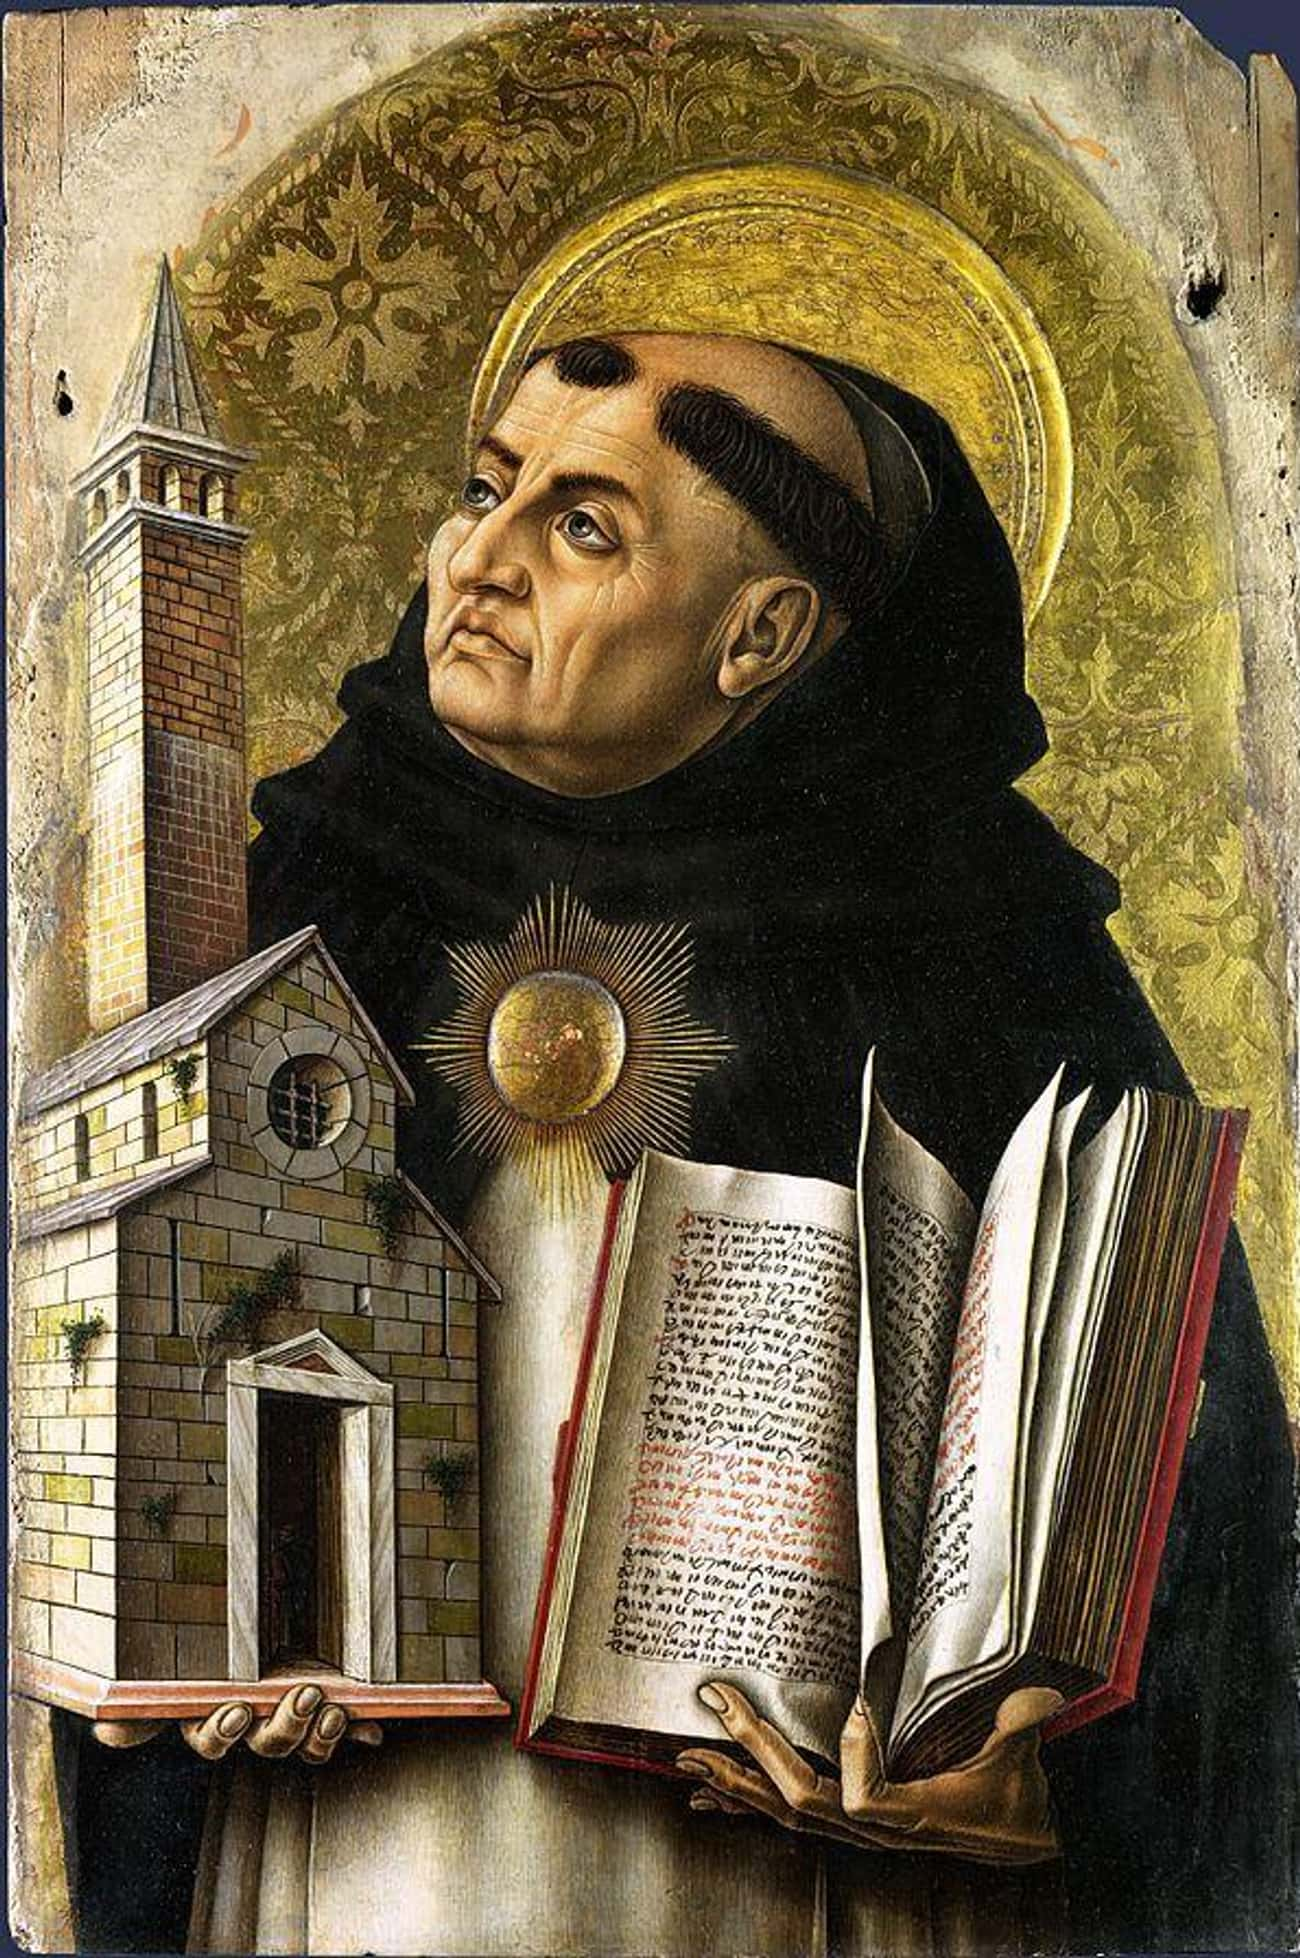 St. Thomas Aquinas Chased A Sex Worker With Fire And Crosses